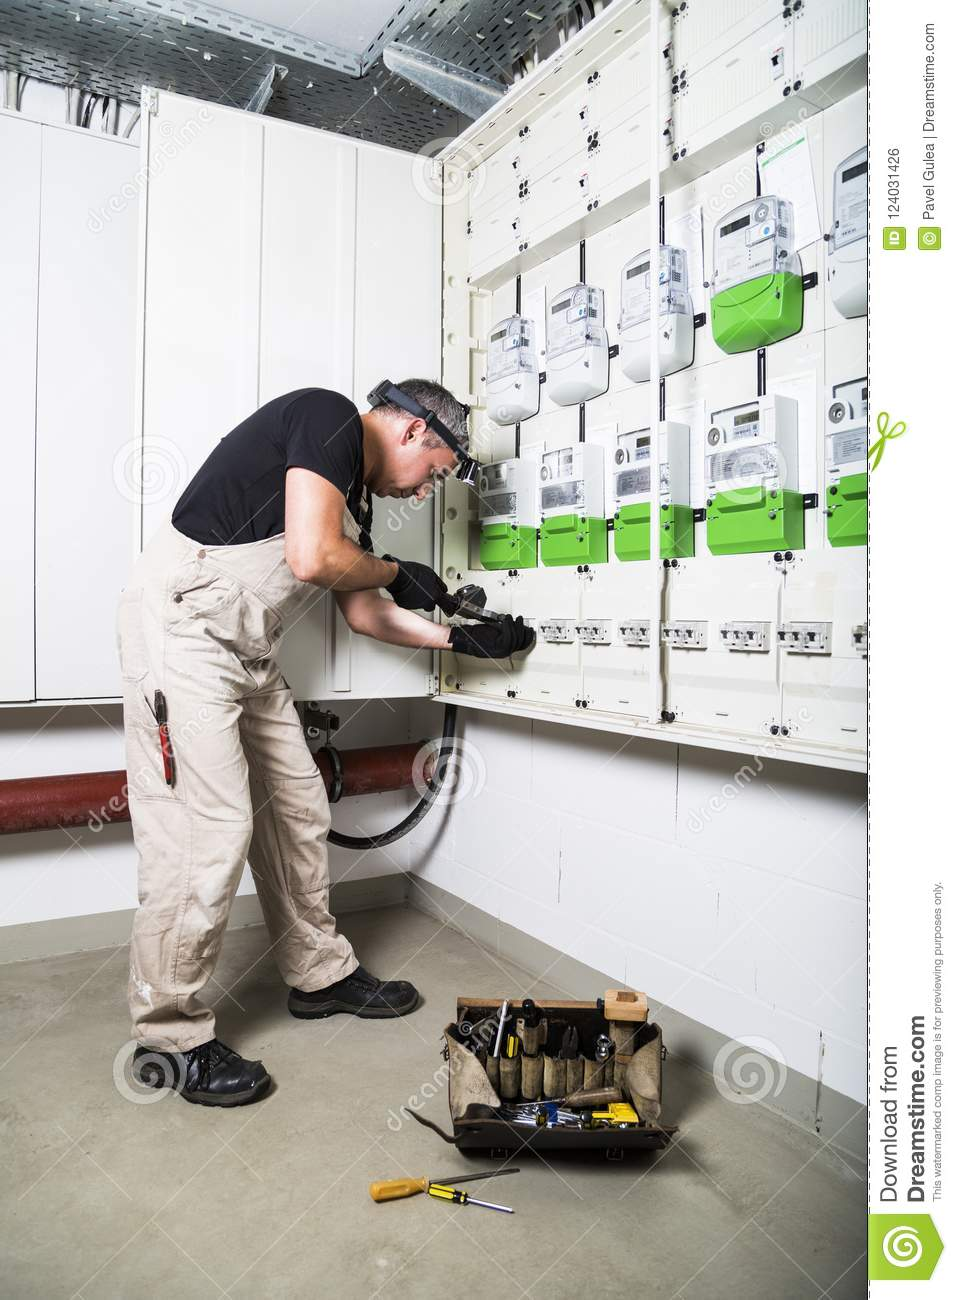 medium resolution of electrician standing near fuse box or switch box and testing equipment with retro voltmeter box of electrician tools stands near